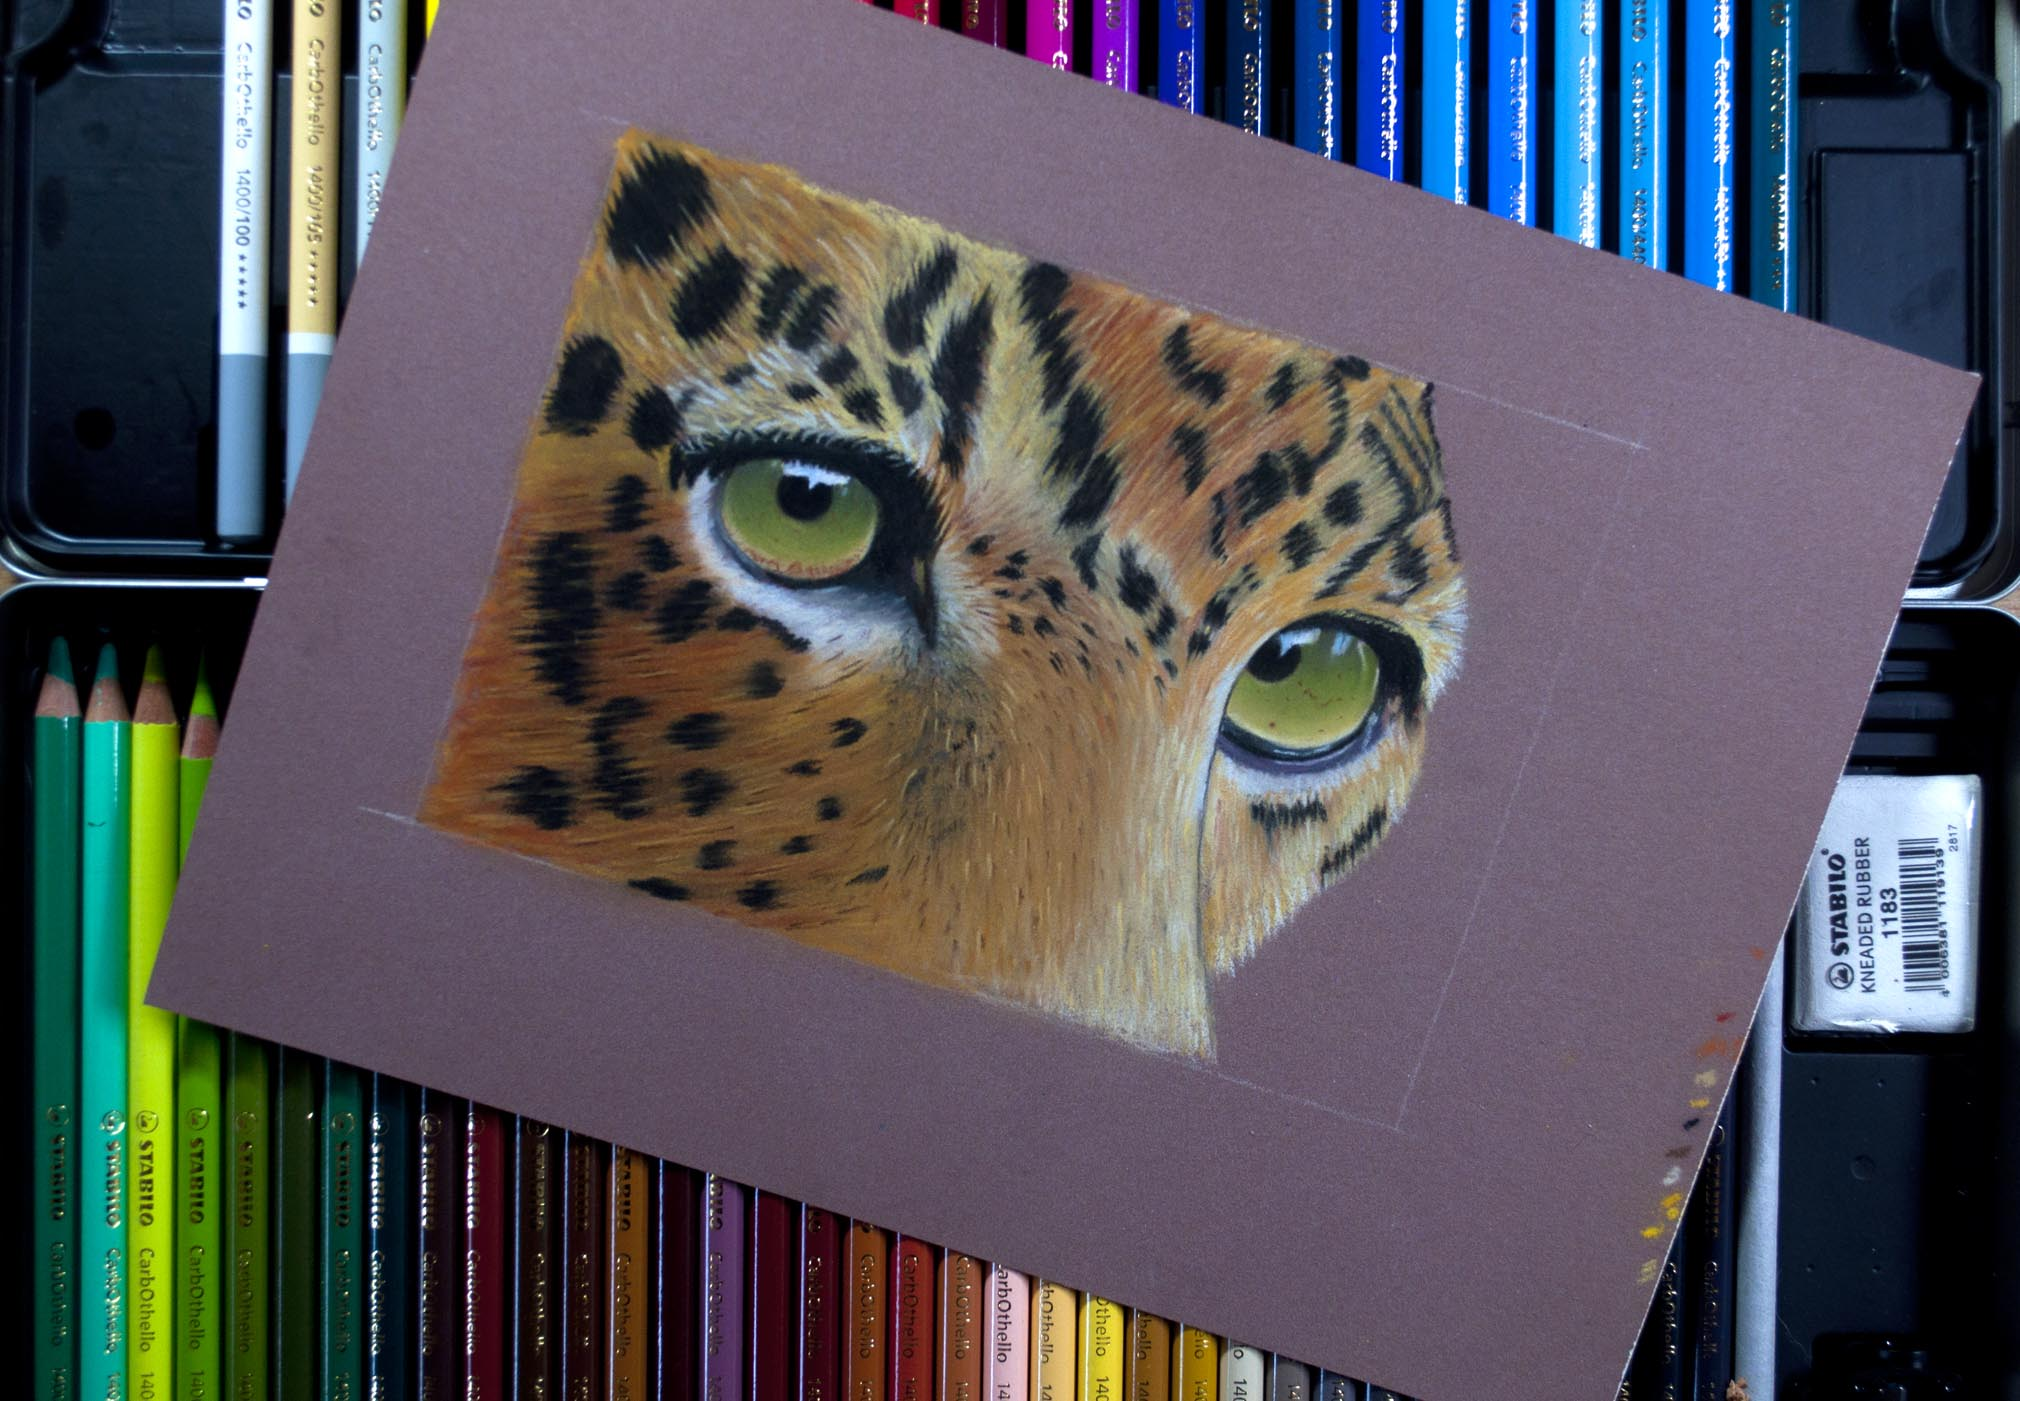 Stabilo Carb Tiger On Tray Of Pencils.jpg